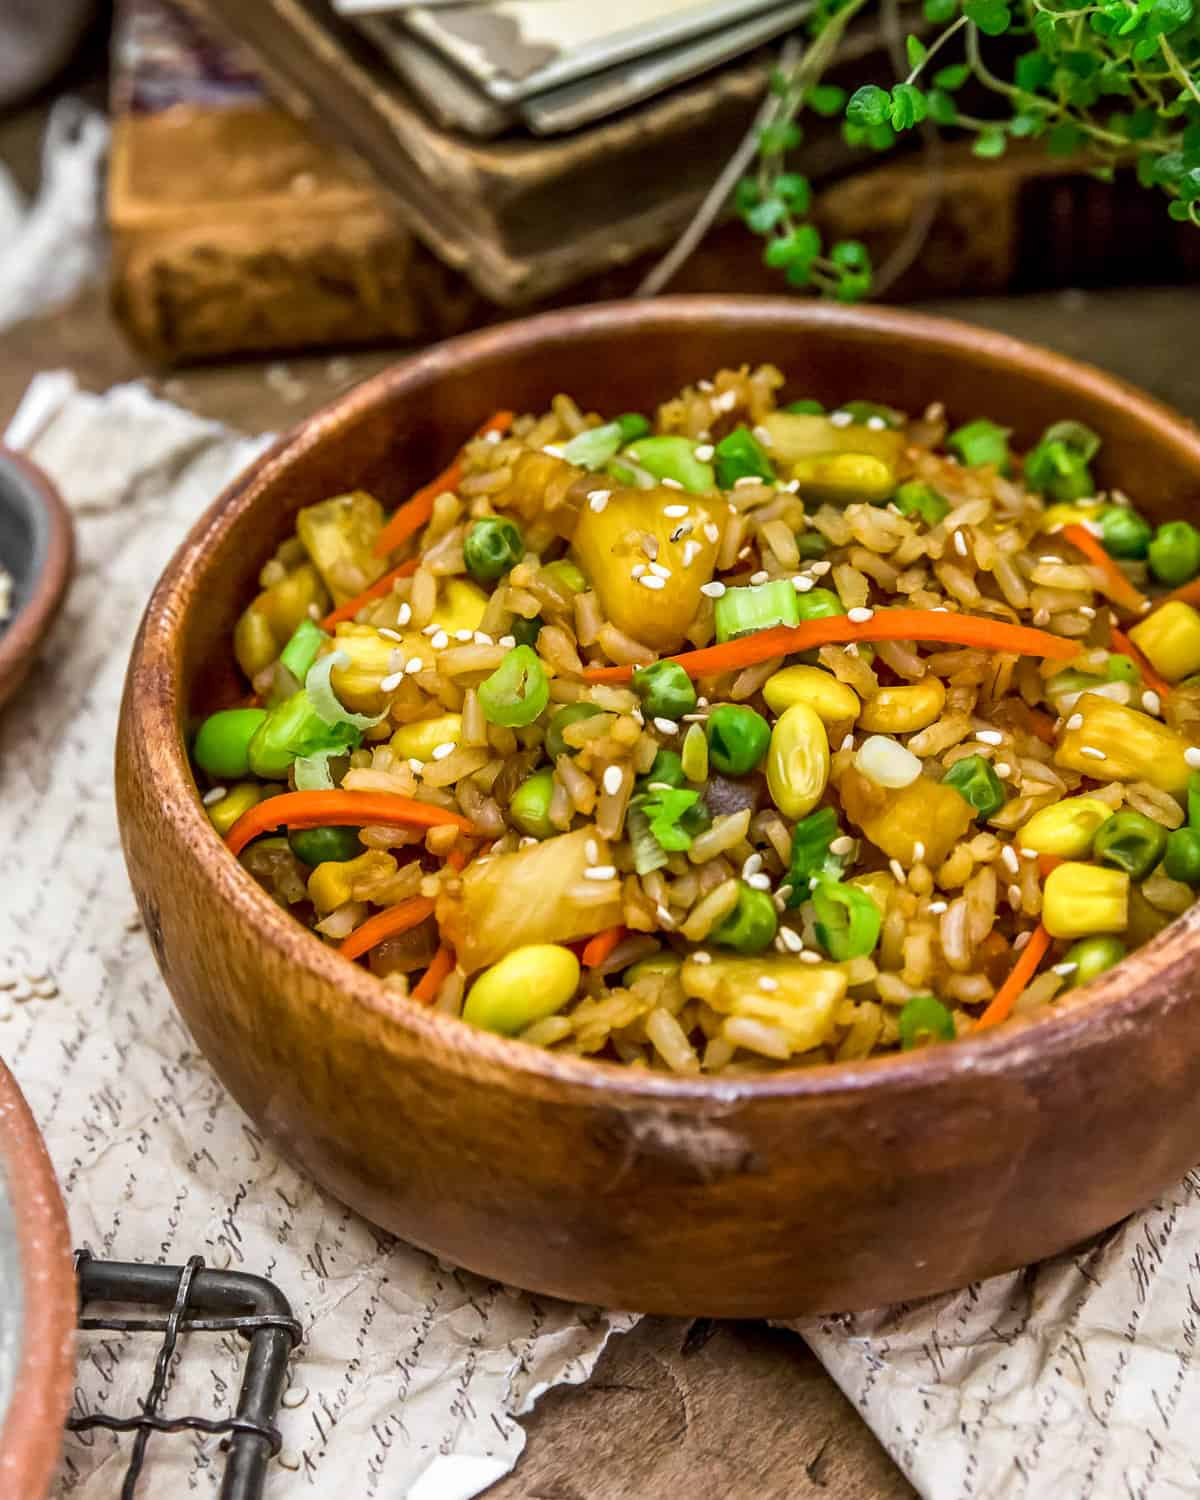 Bowl of Pineapple Fried Rice